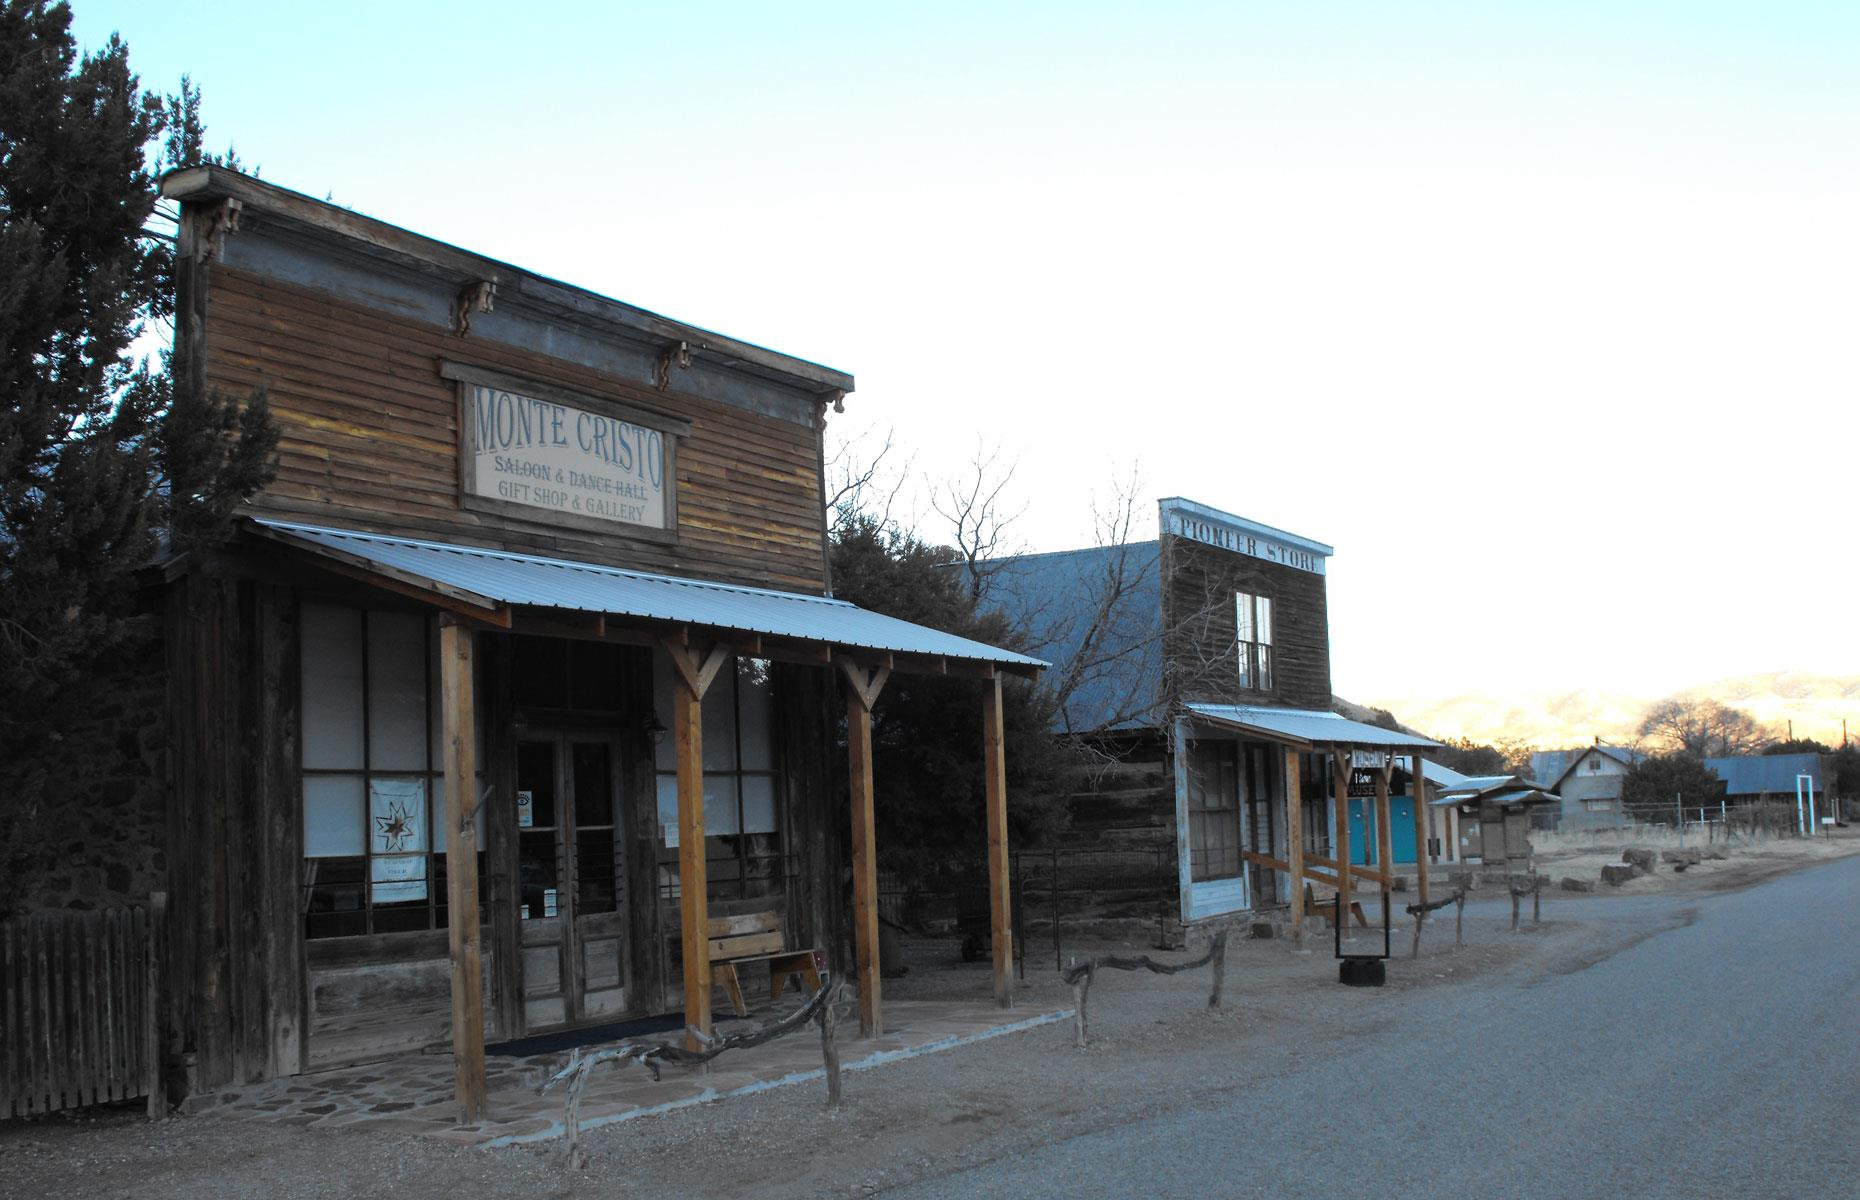 Slide 62 of 101: This semi-ghost town is home to just 11 residents, down from 2,000 at its peak. Chloride was founded in 1880 when silver ore was discovered nearby. Within a few years, the town had everything from a general store to a school, as well as two hotels and a total of nine saloons.